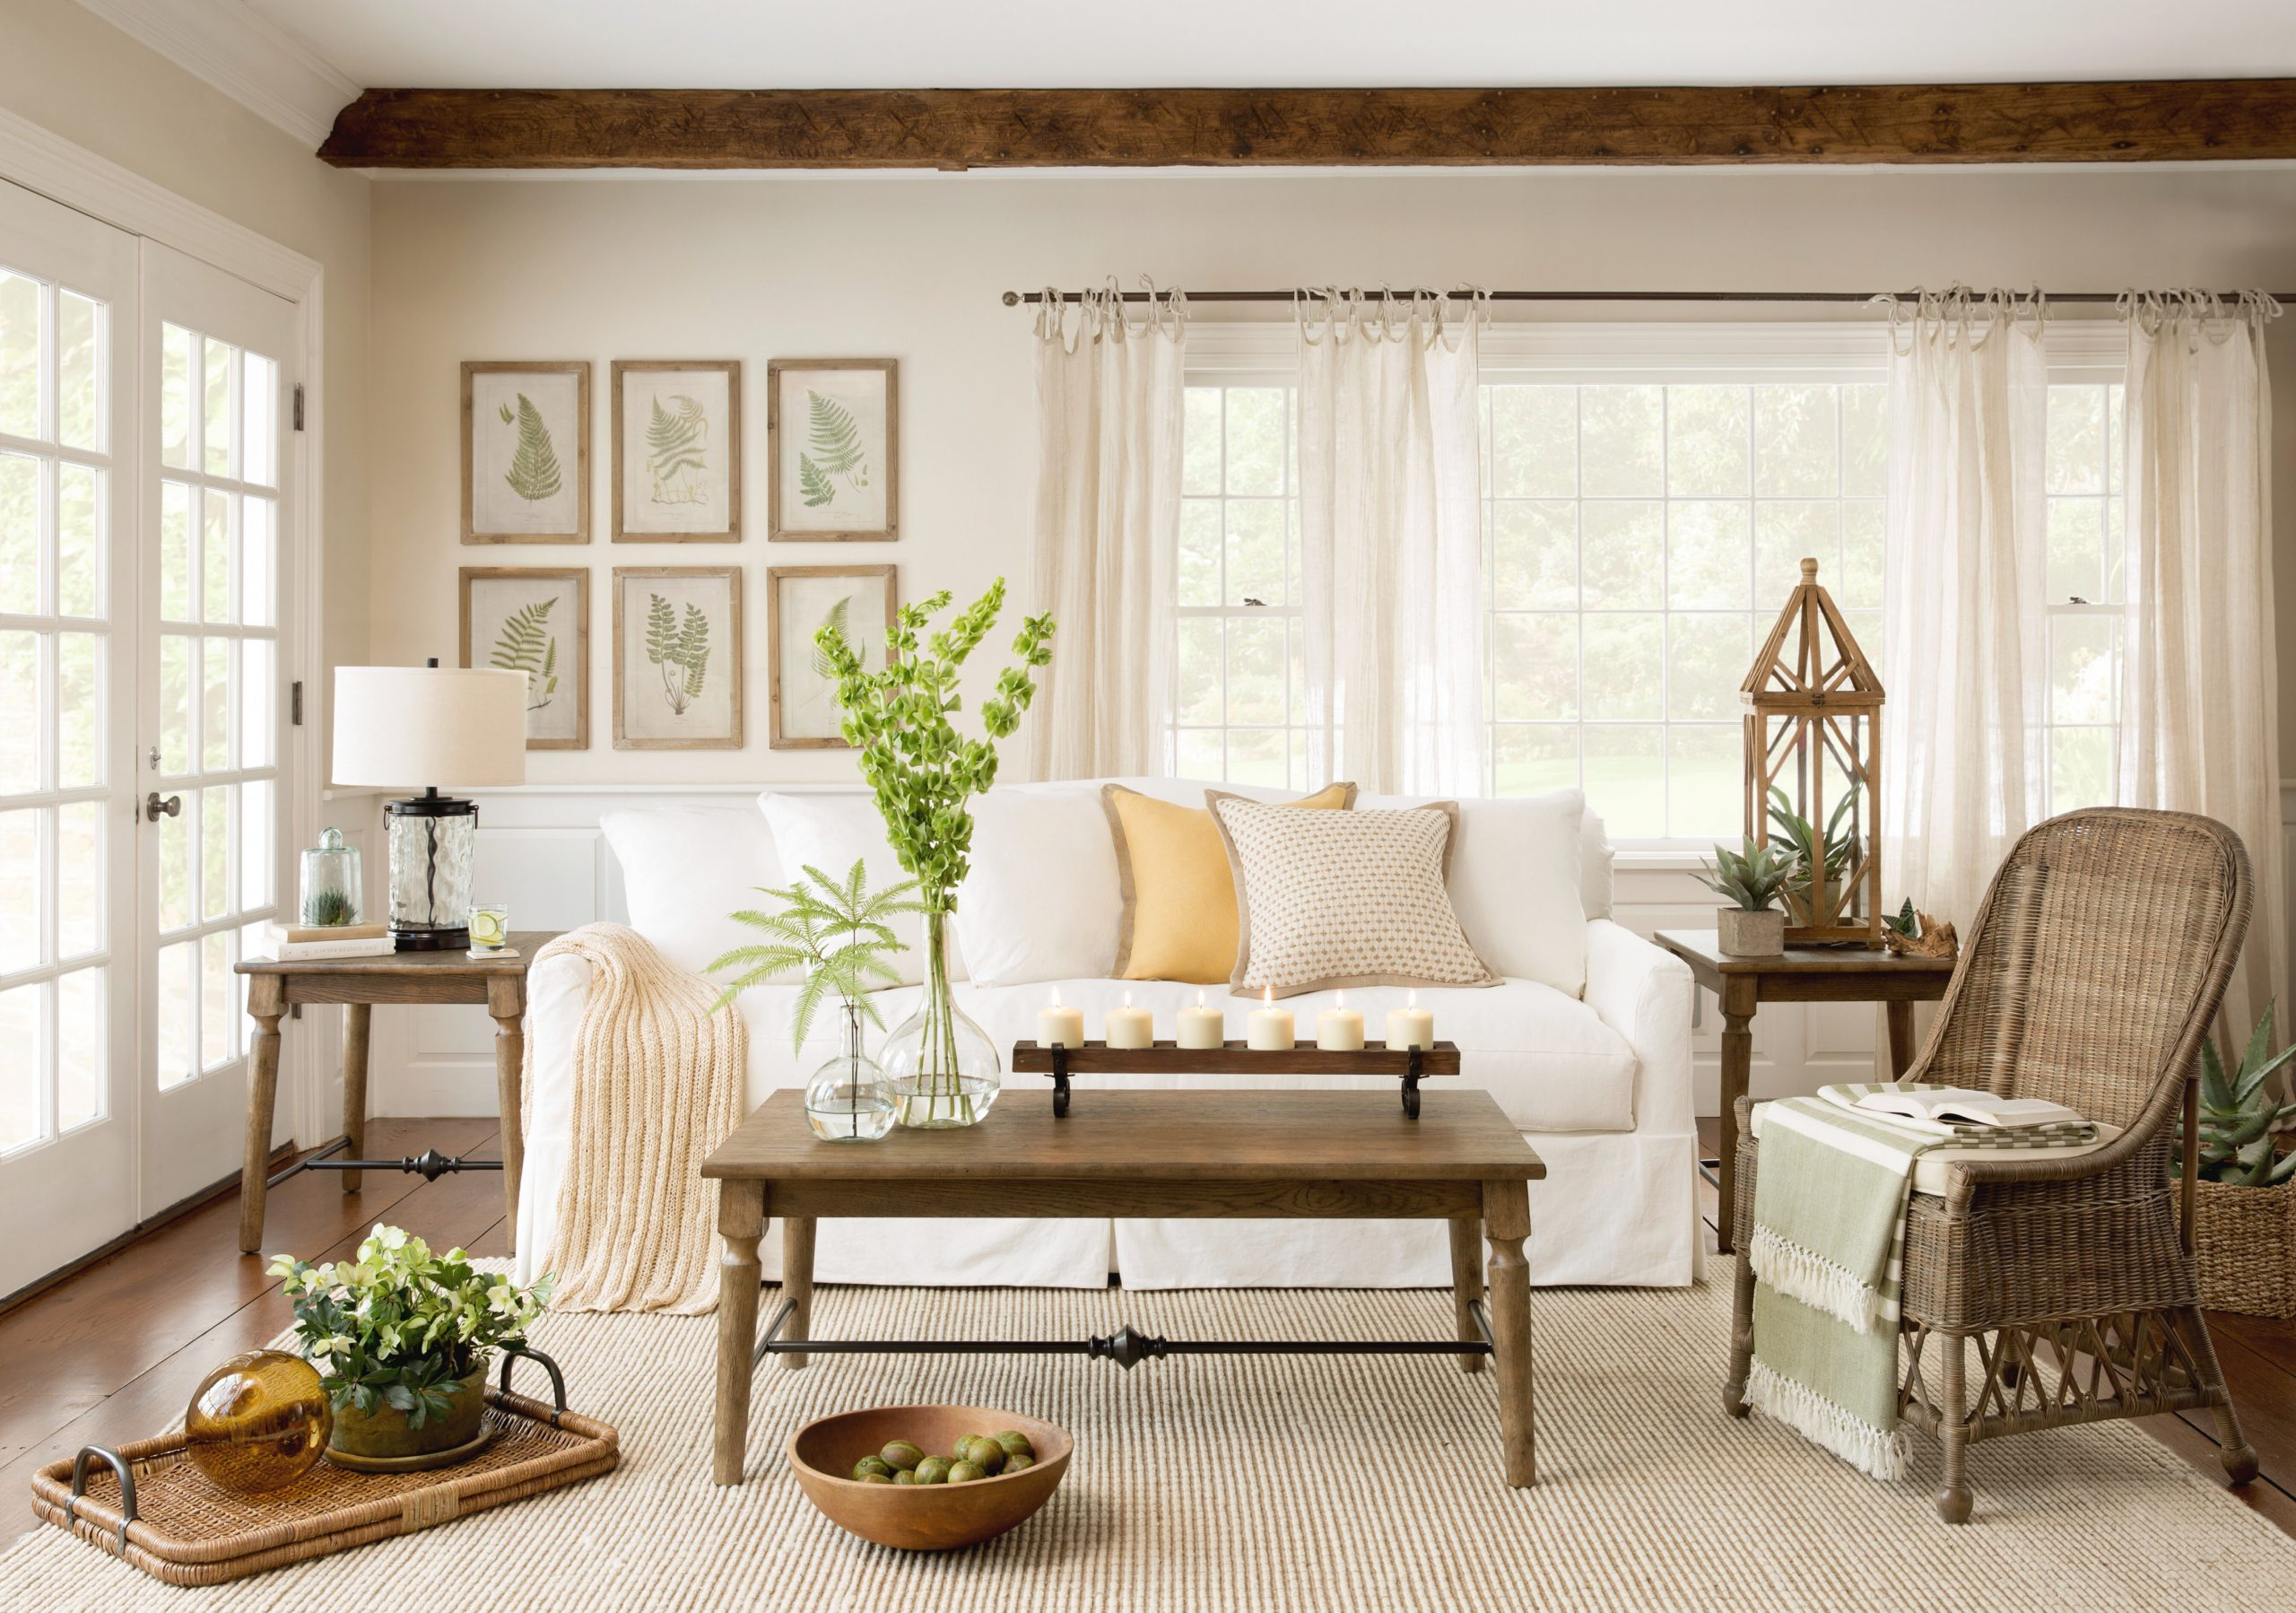 14 Curtain Ideas For Every Room In Your Home | Wayfair with Curtain Styles For Living Rooms